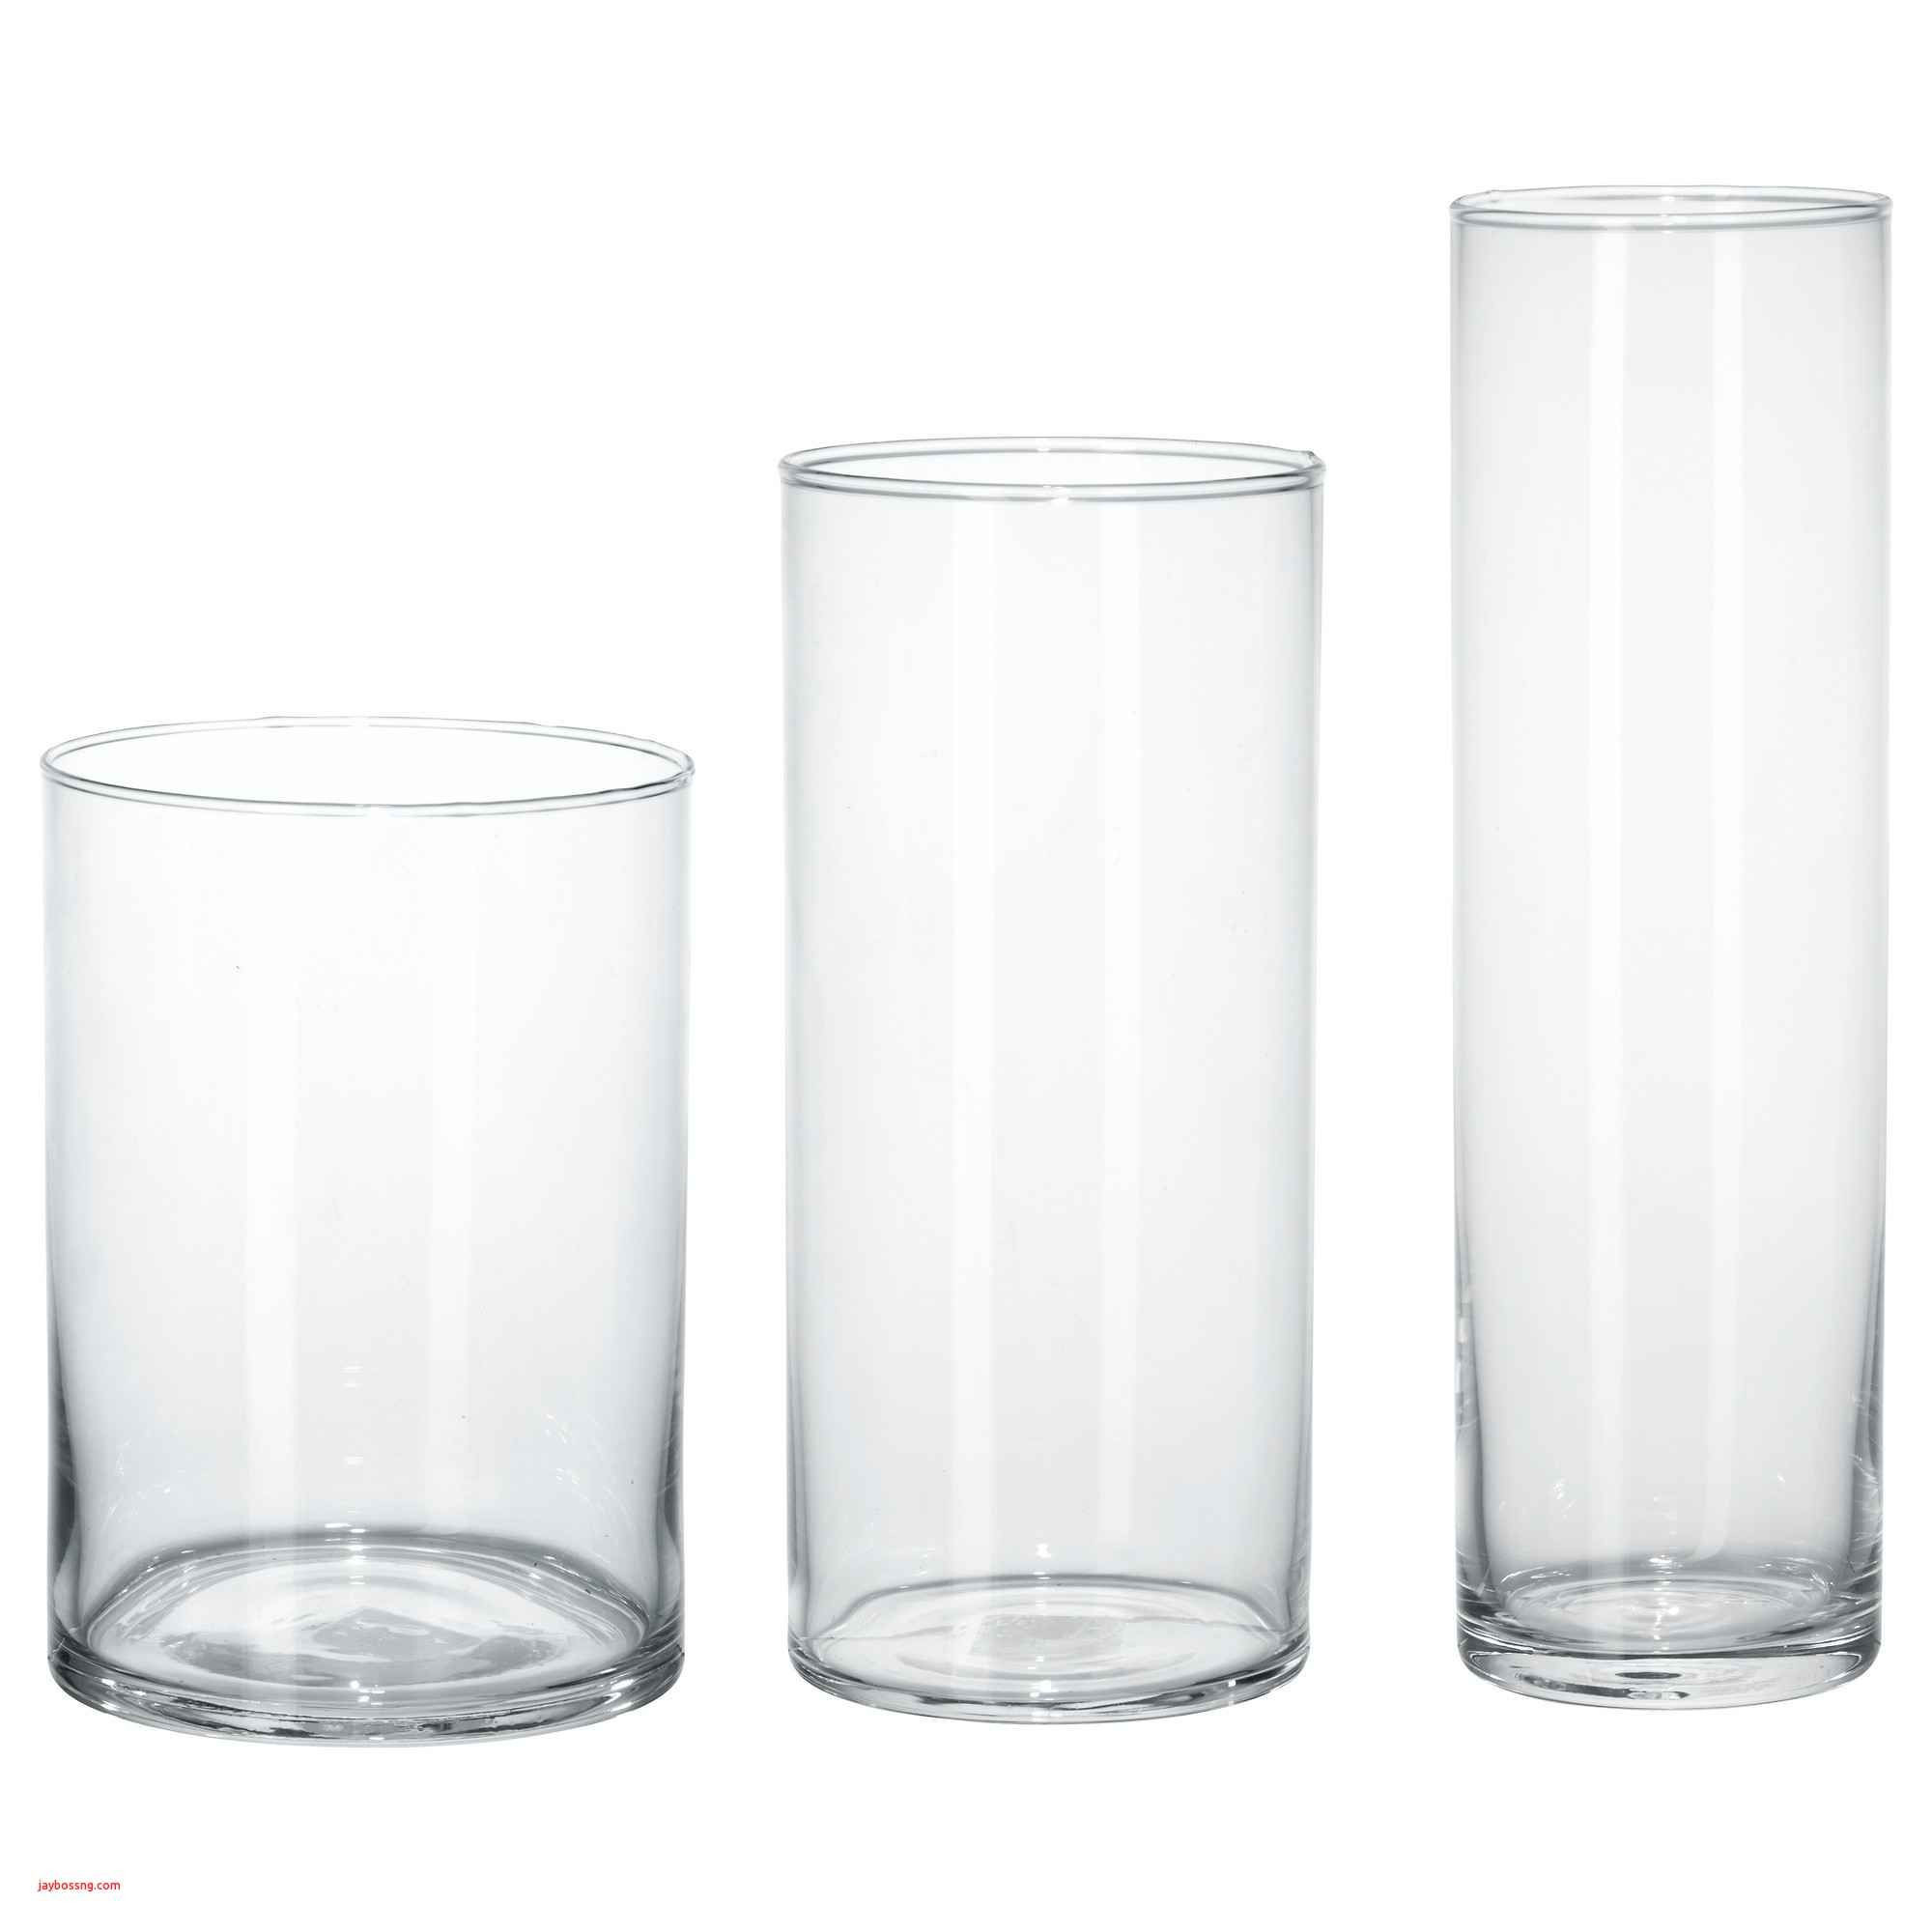 square vases set of 3 of brown glass vase fresh ikea white table created pe s5h vases ikea intended for brown glass vase fresh ikea white table created pe s5h vases ikea vase i 0d bladet